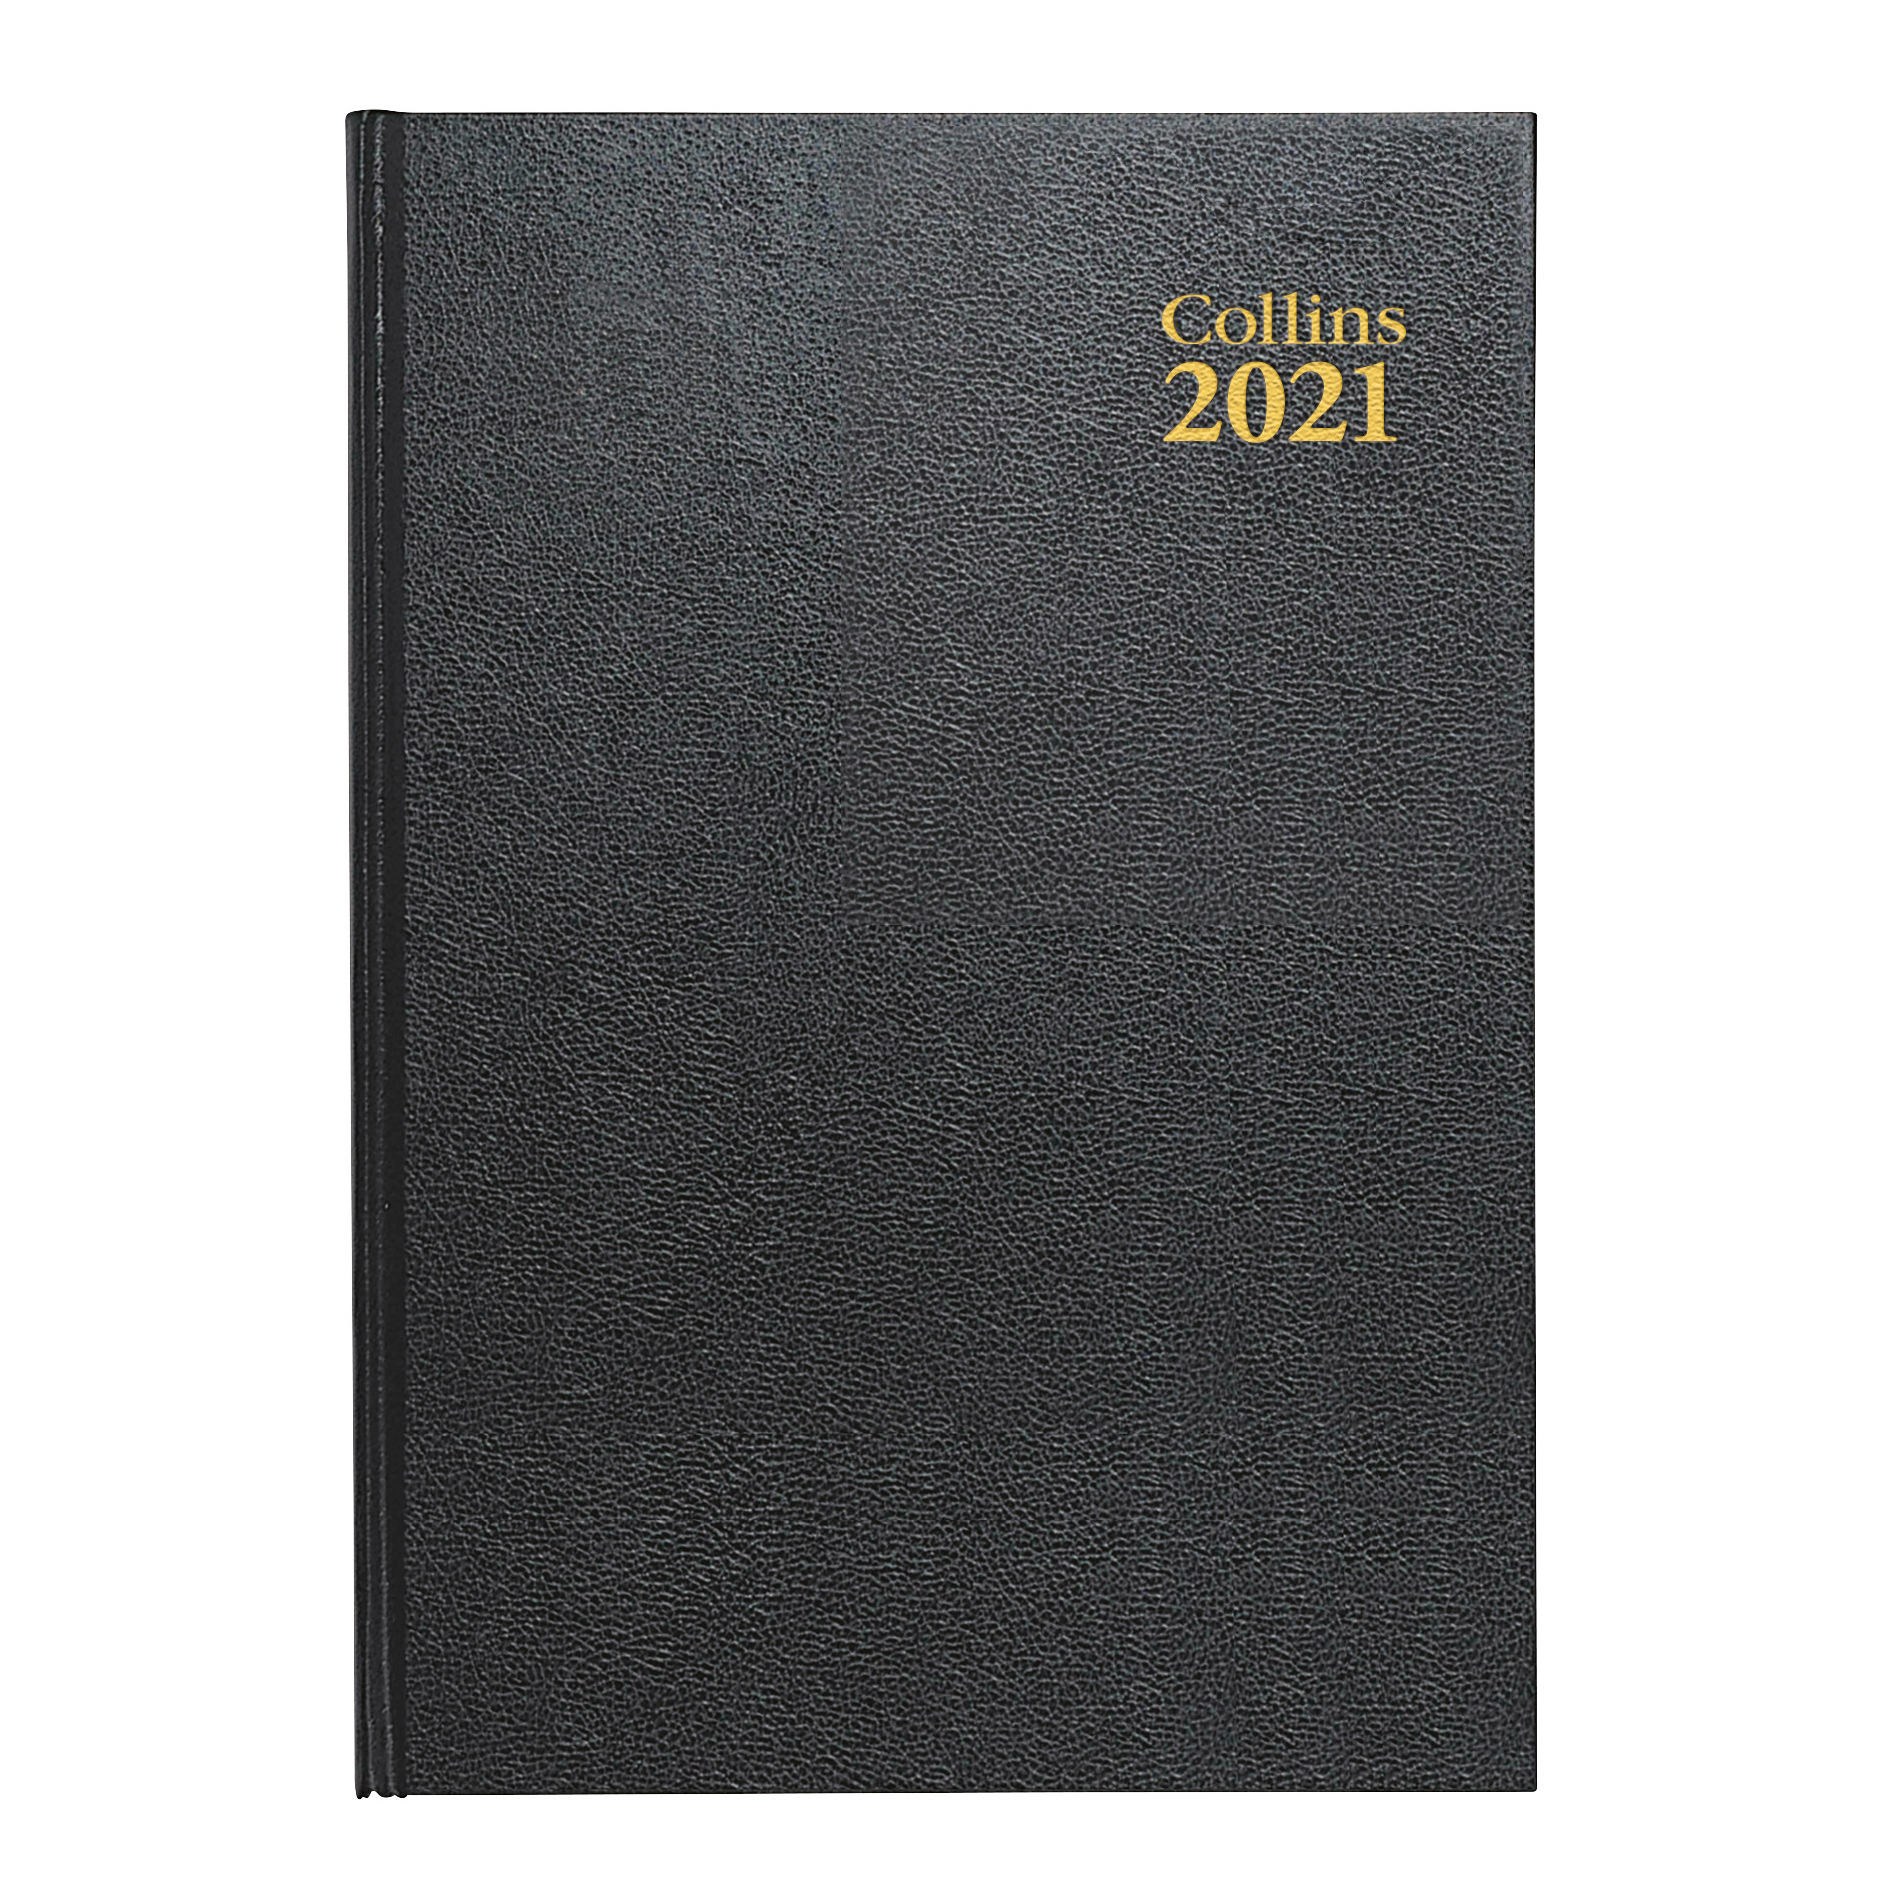 Collins 2021 Desk Diary Day to Page Sewn Binding A4 297x210mm Black Ref 44E 2021